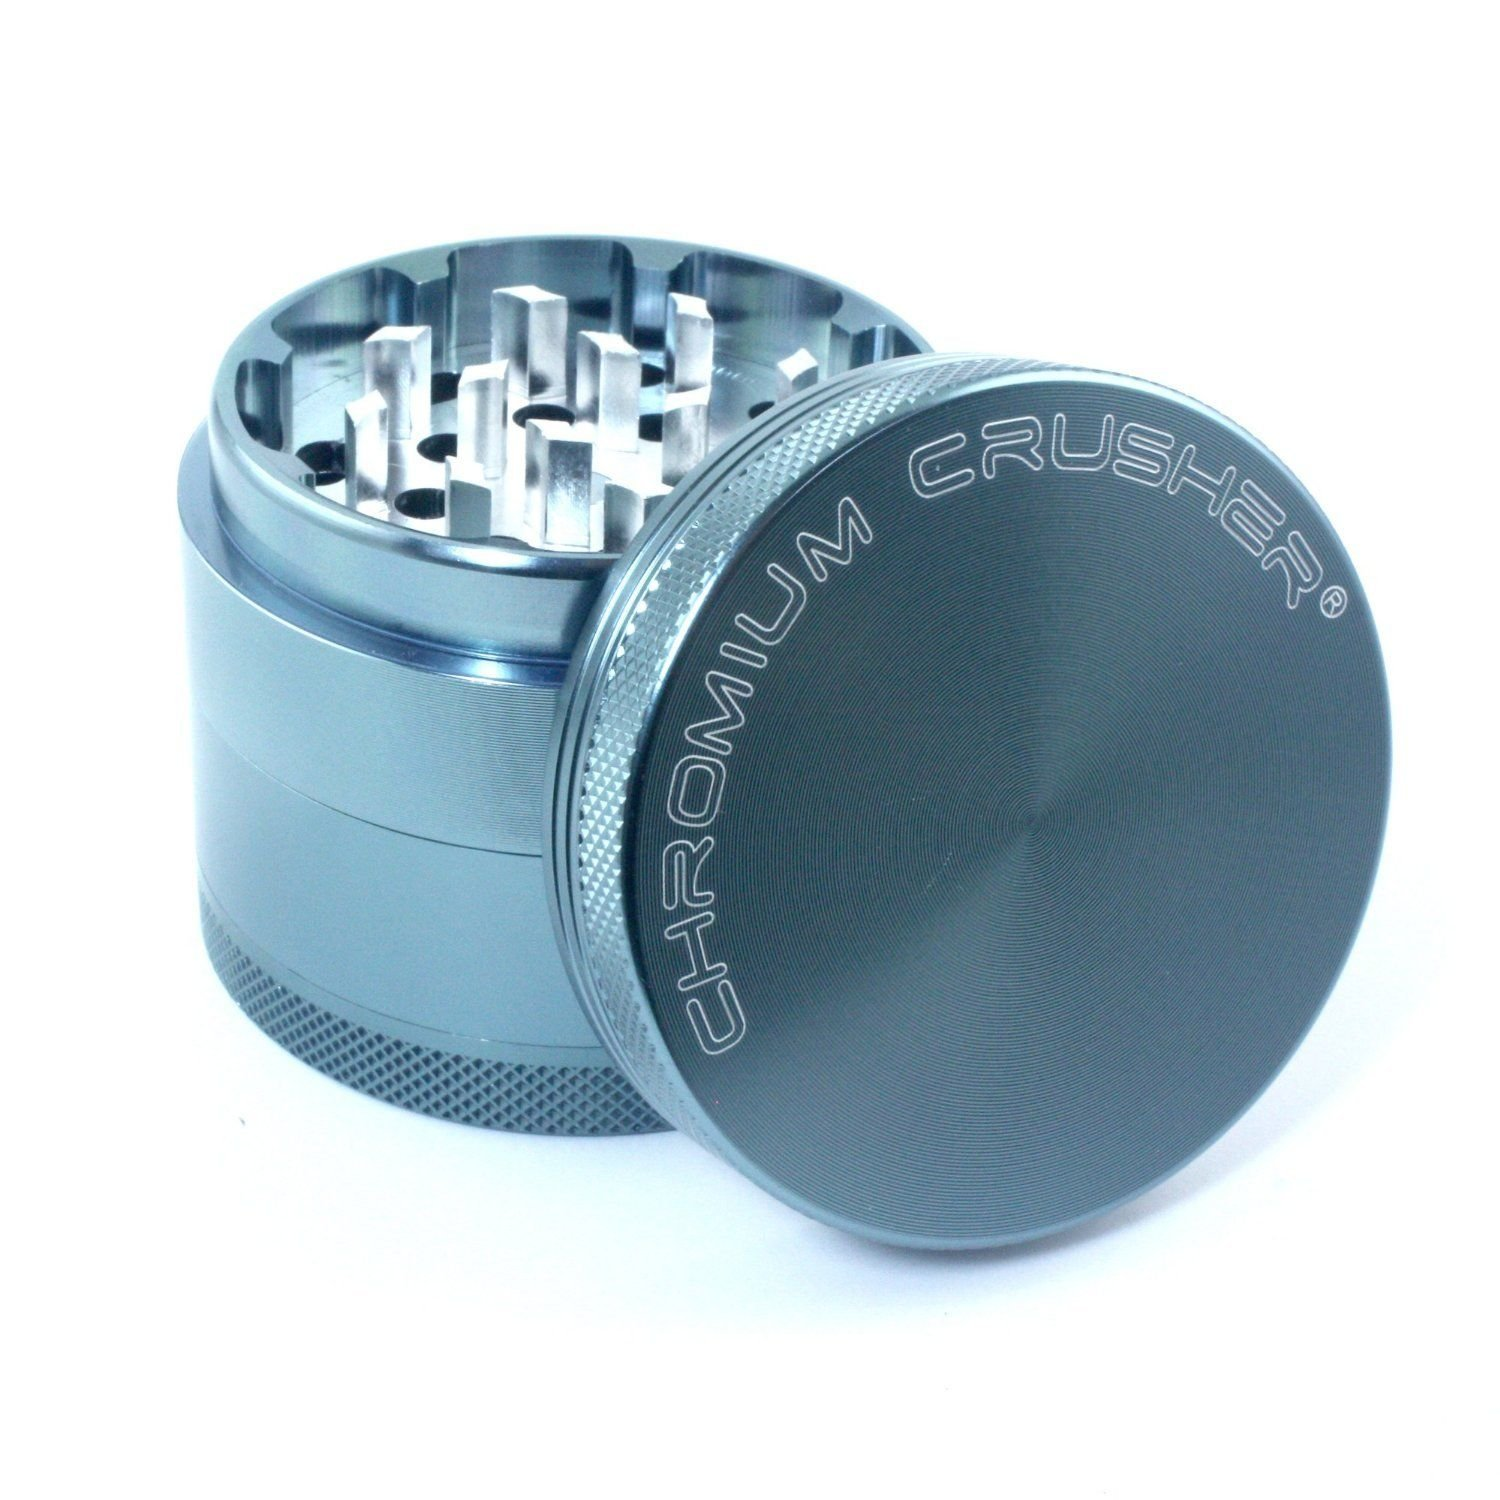 Chromium Crusher 2 Inch 4 Piece Tobacco Spice Herb Grinder - Black